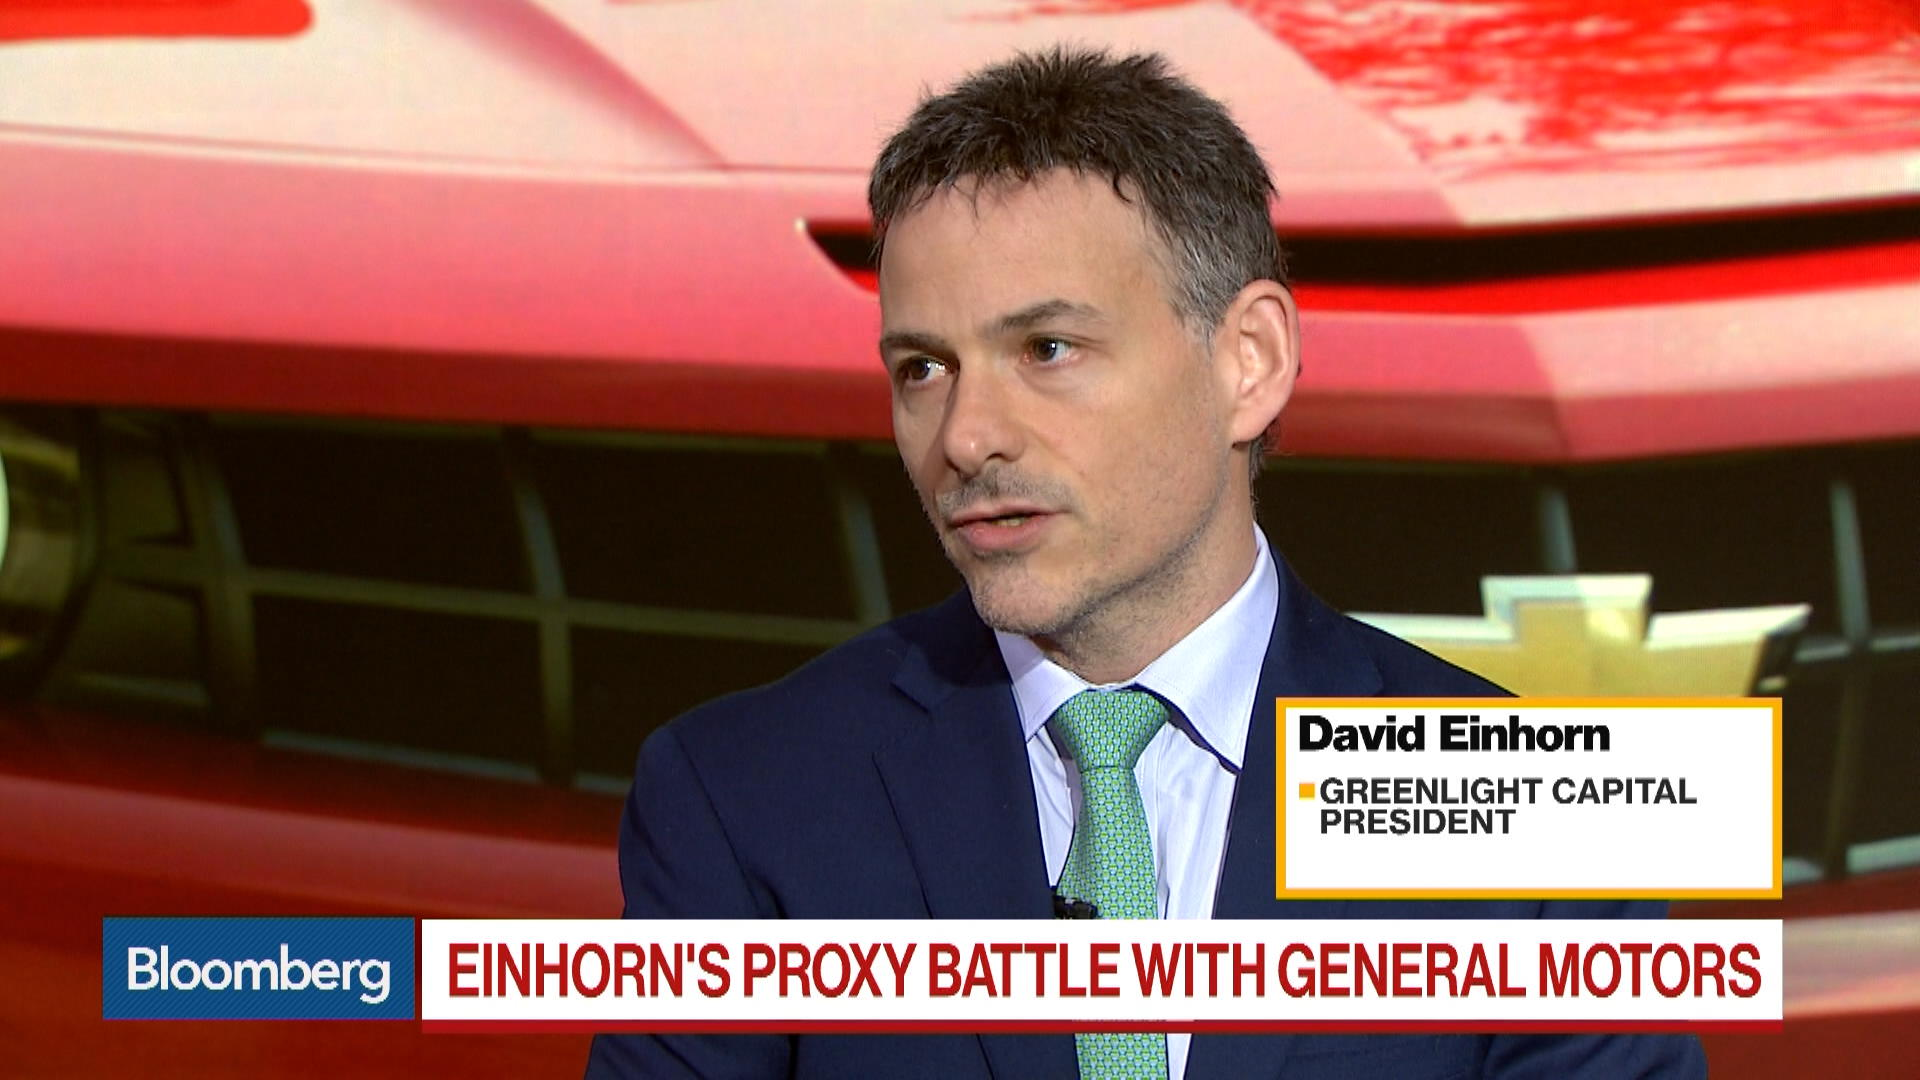 David Einhorn on GM Value  Tesla Profit  Apple     Bloomberg